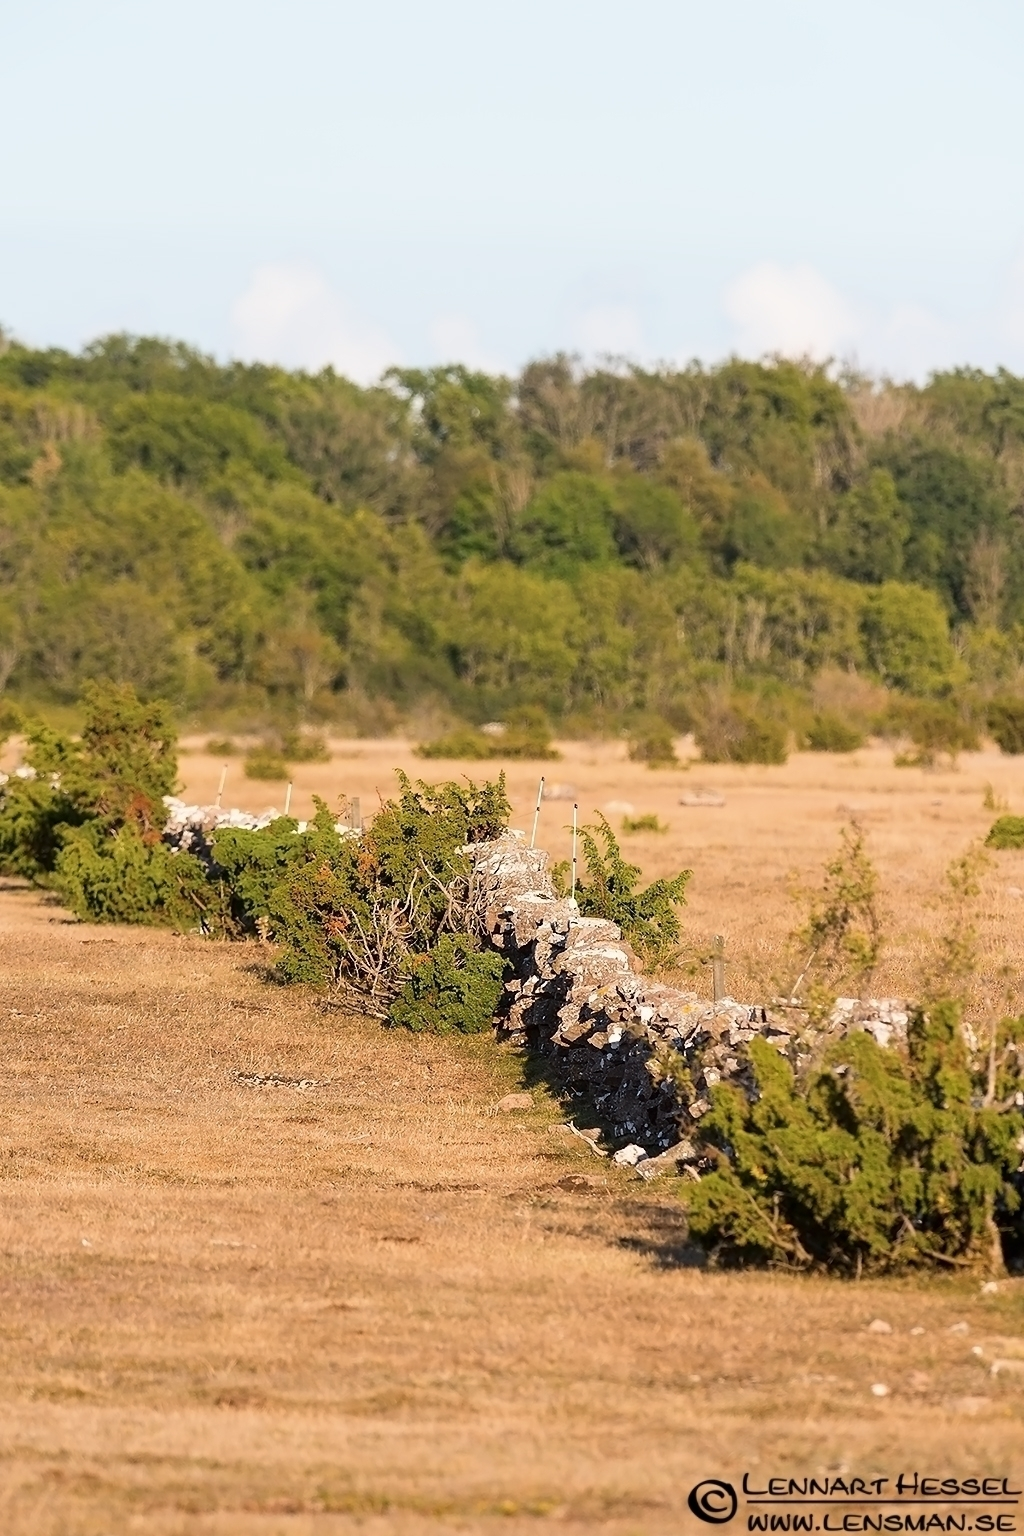 Typical scenery in Öland 2012